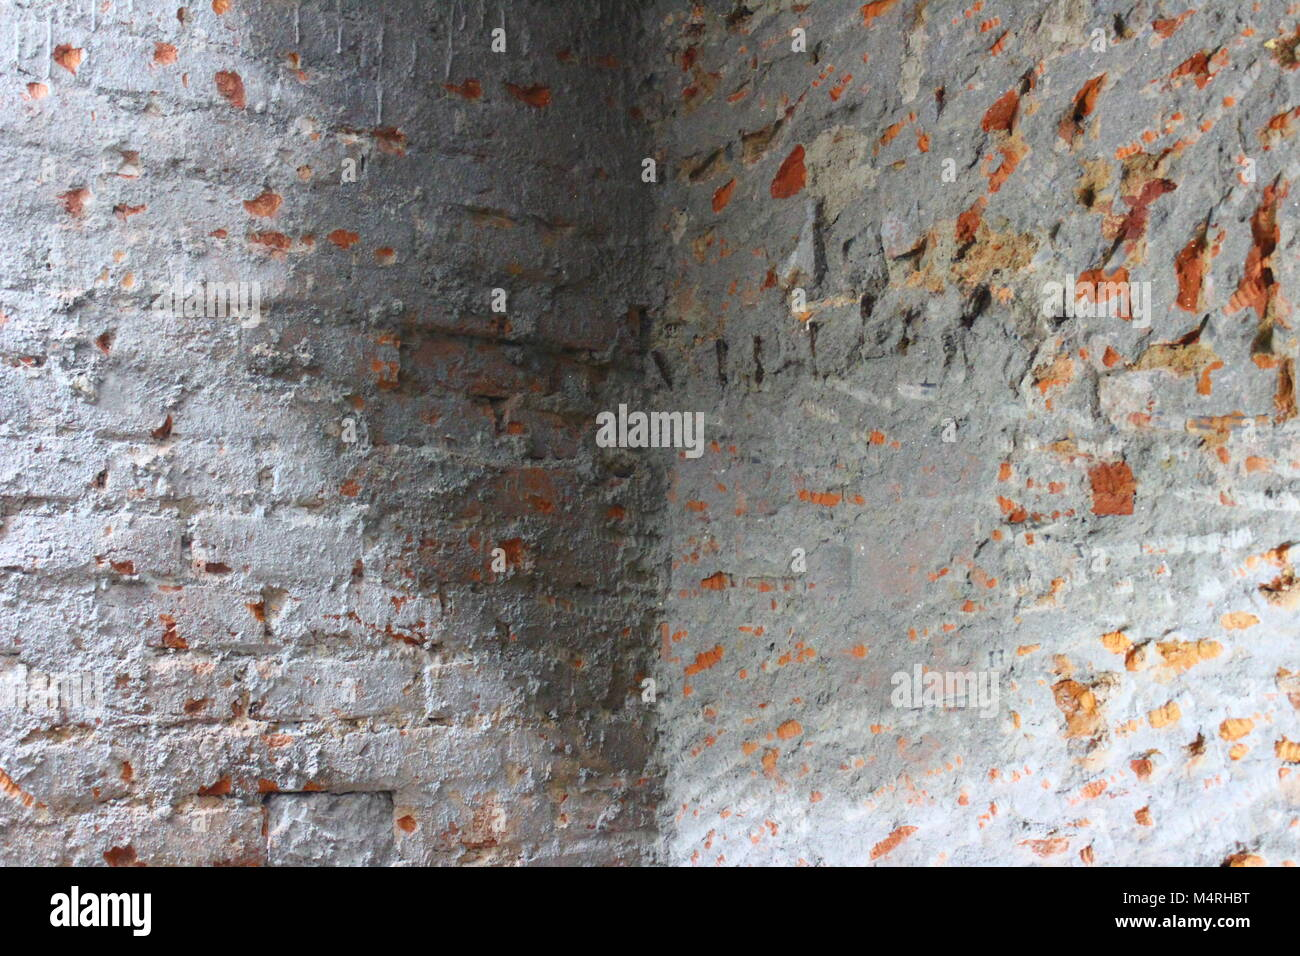 Dampness on walls - Stock Image